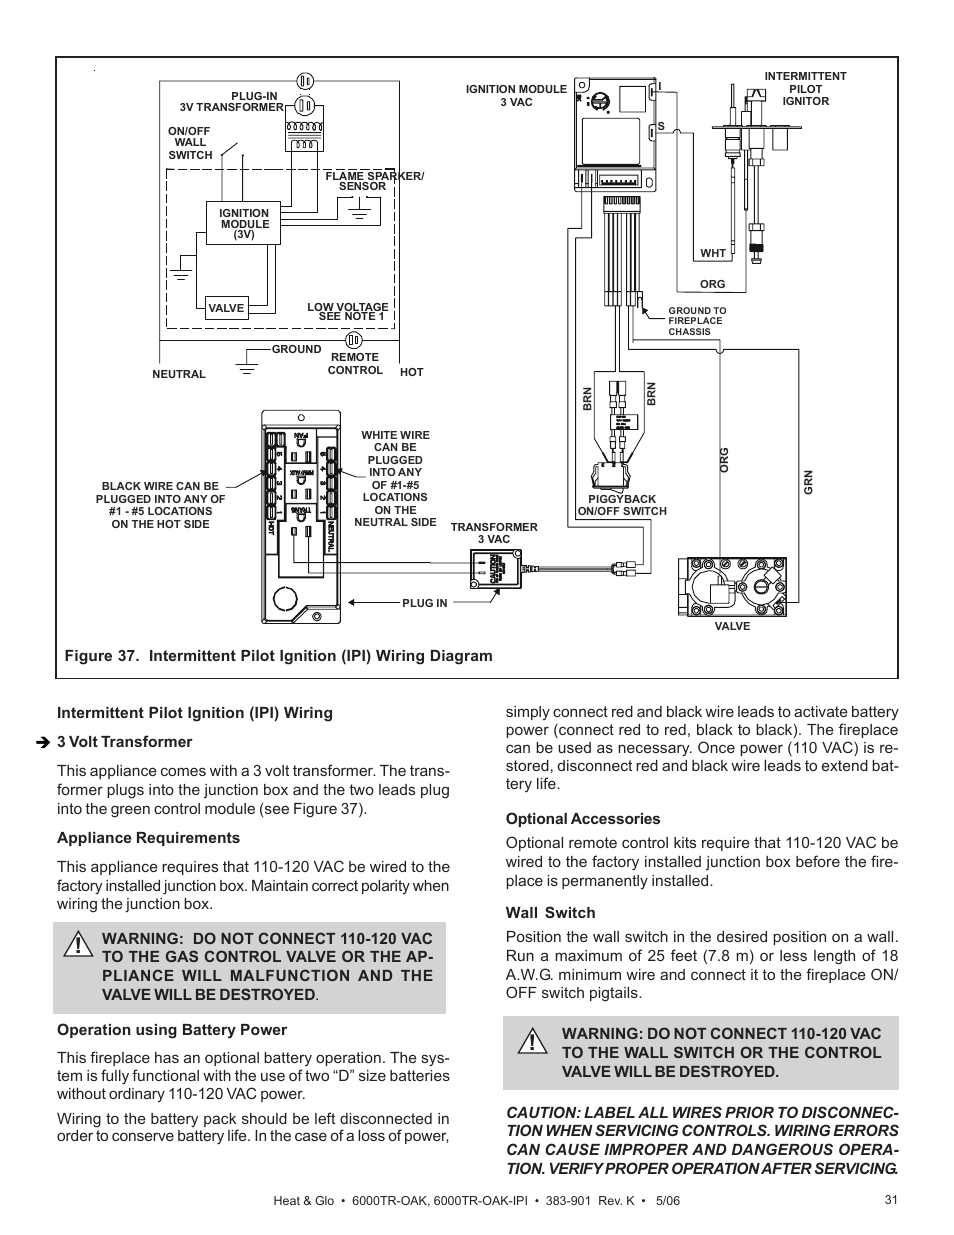 Glo Underfloor Heating Wiring Diagram : Heat glo fireplace tr oak user manual page